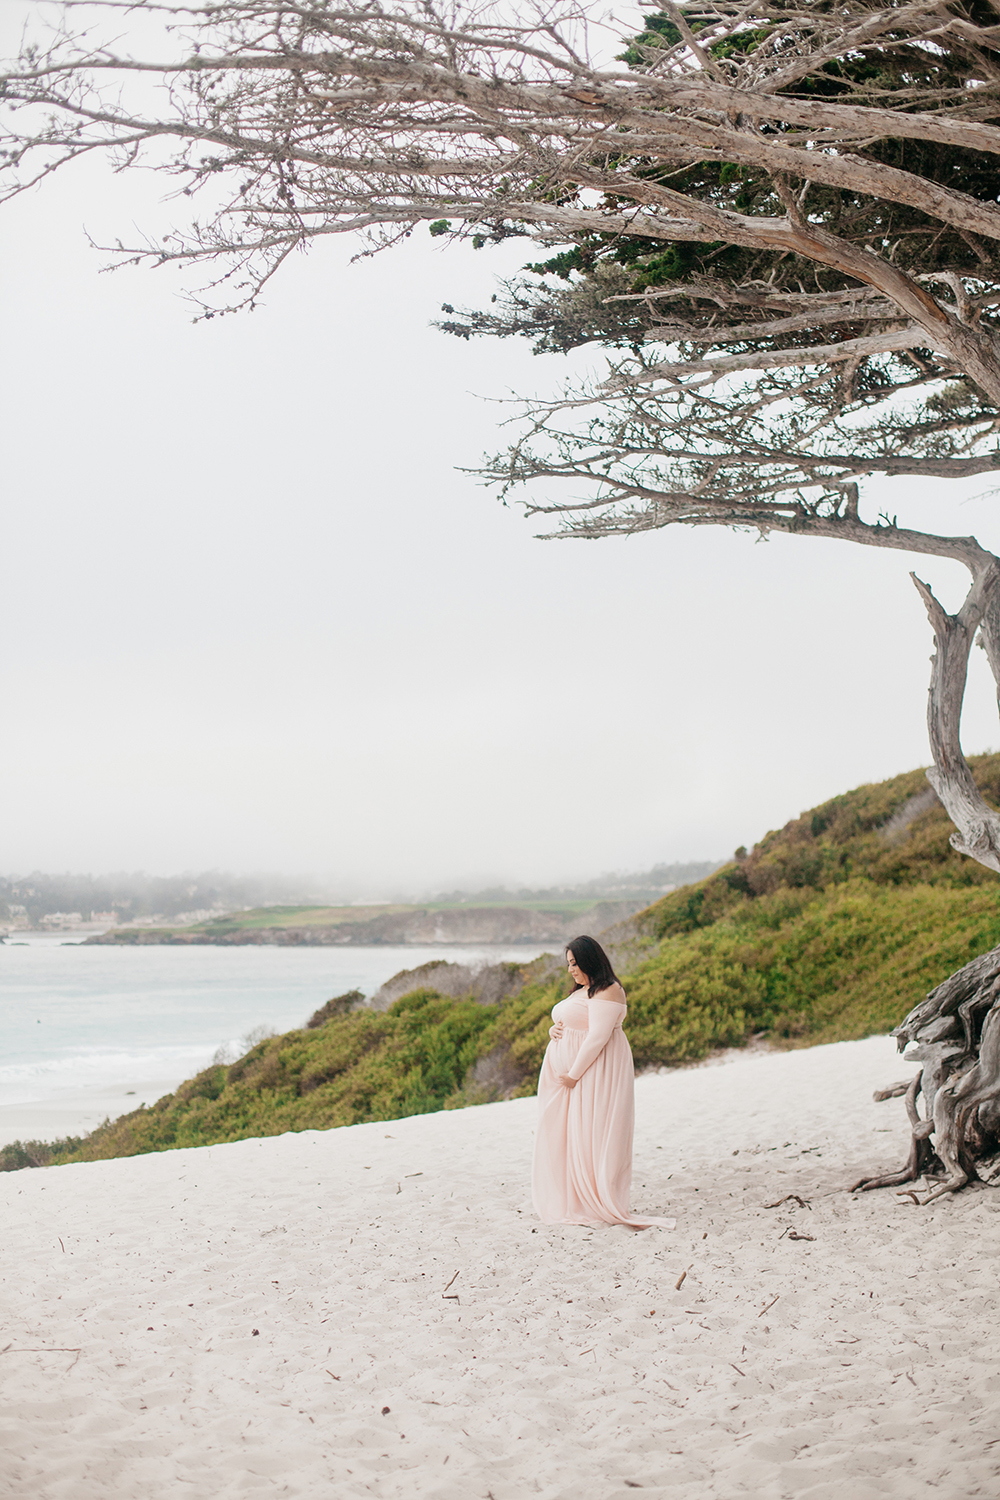 Pregnant woman in a long dress standing under a tree in Carmel-by-the-sea.